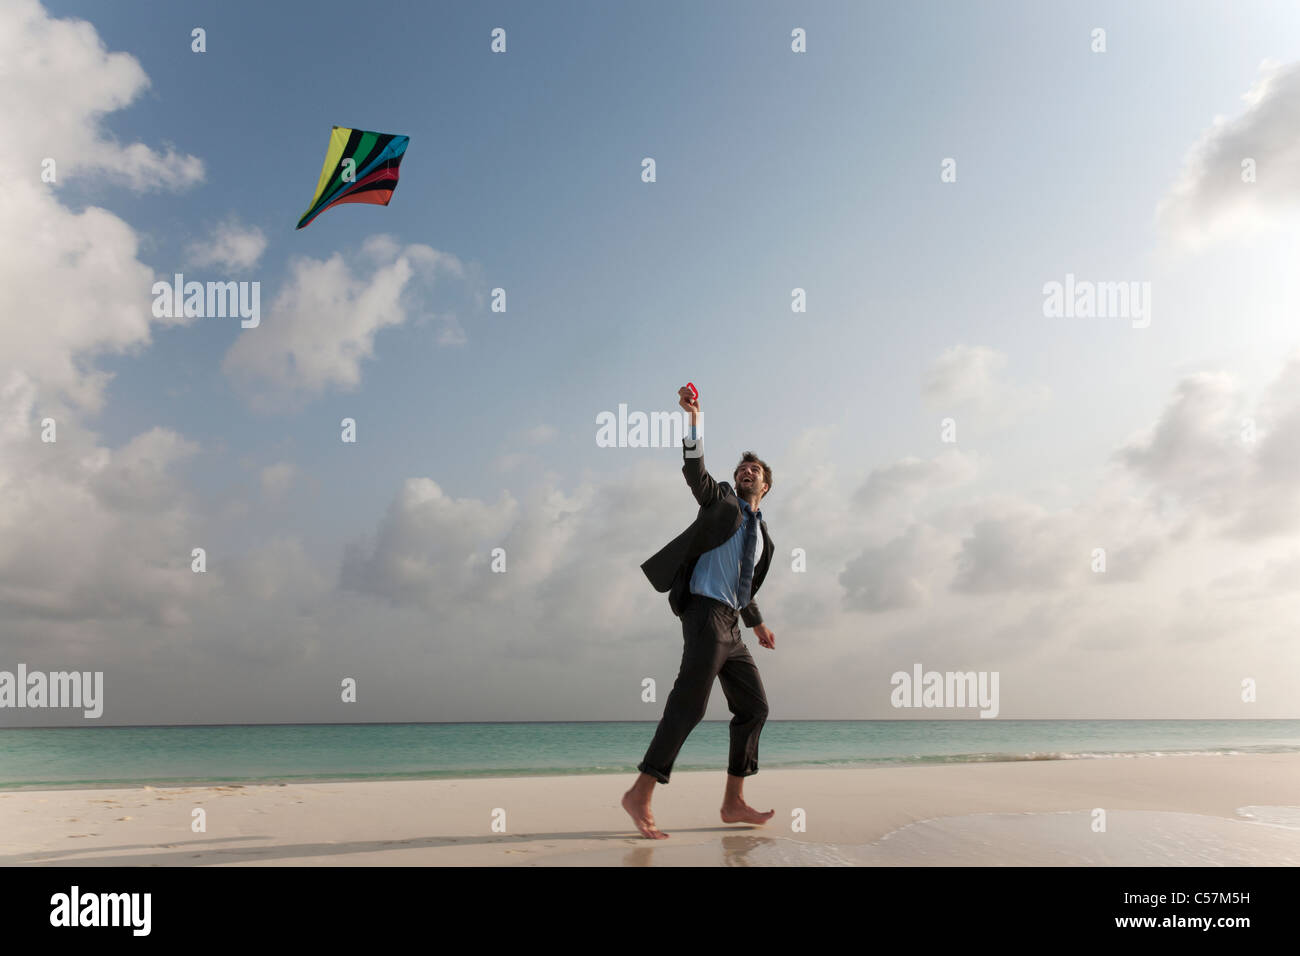 Businessman flying a kite on beach Stock Photo